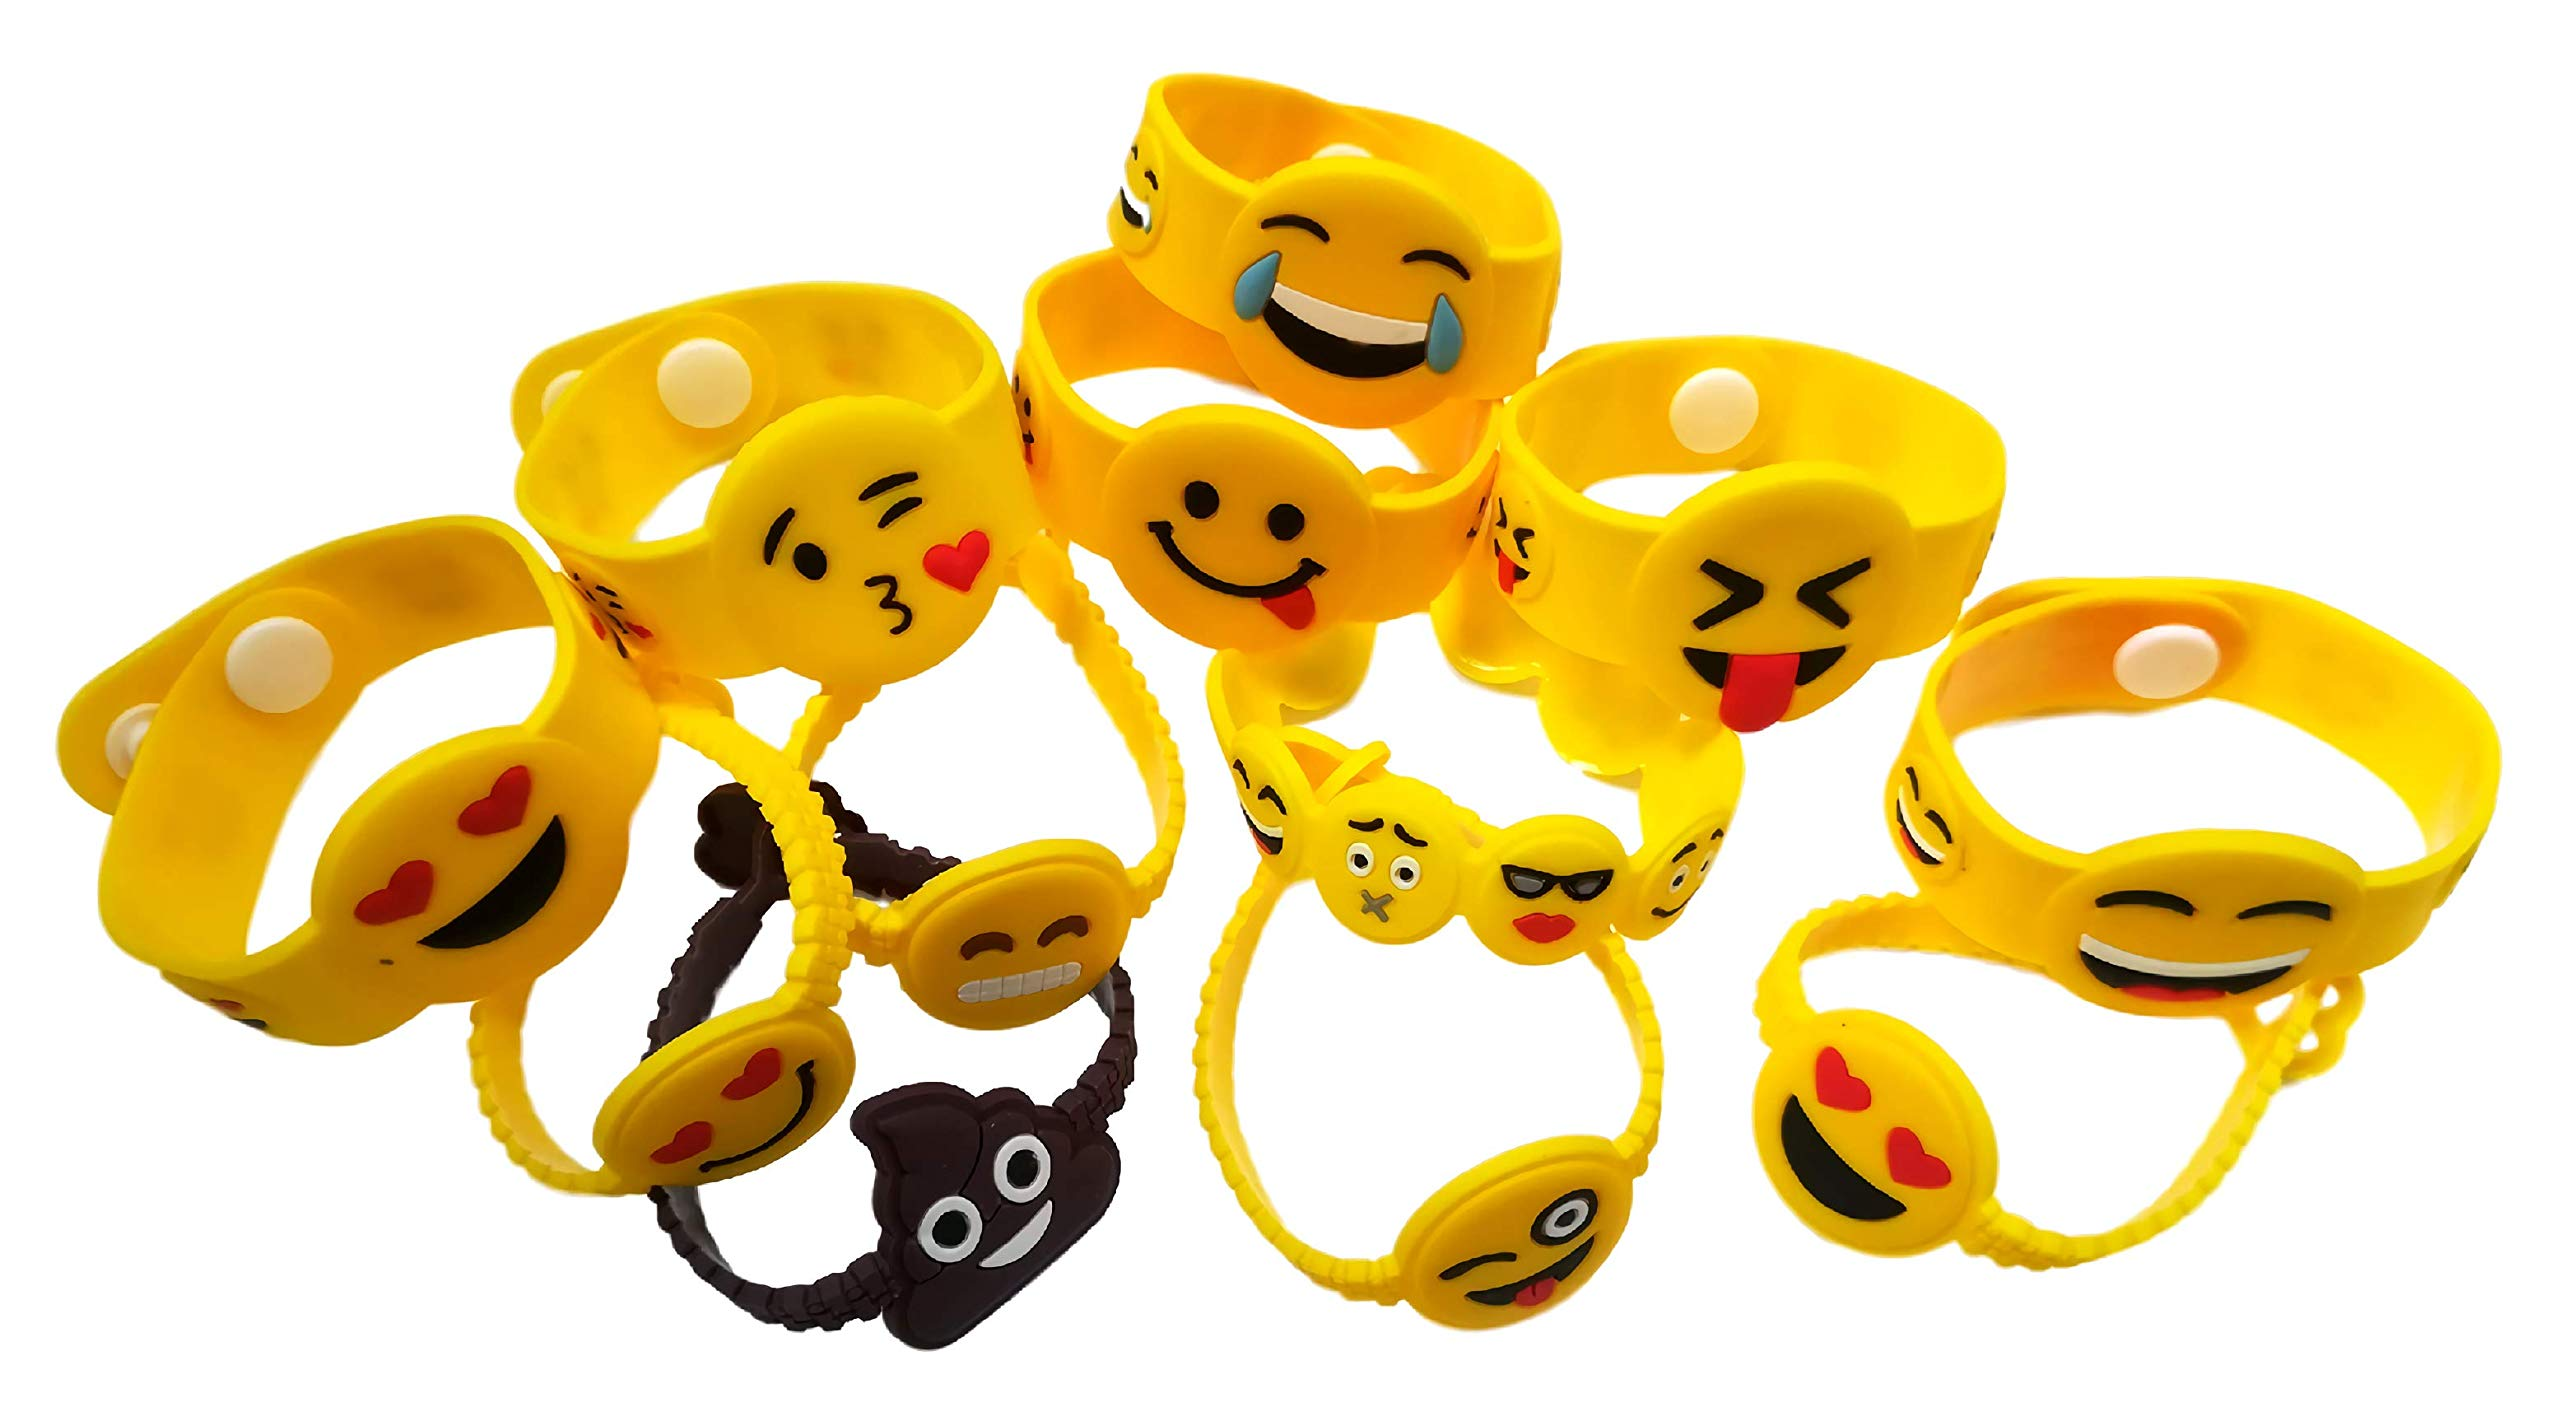 OHill 48 Pack Mixed Emoji Wristband Bracelets for Birthday Party Supplies Favors Prize Rewards